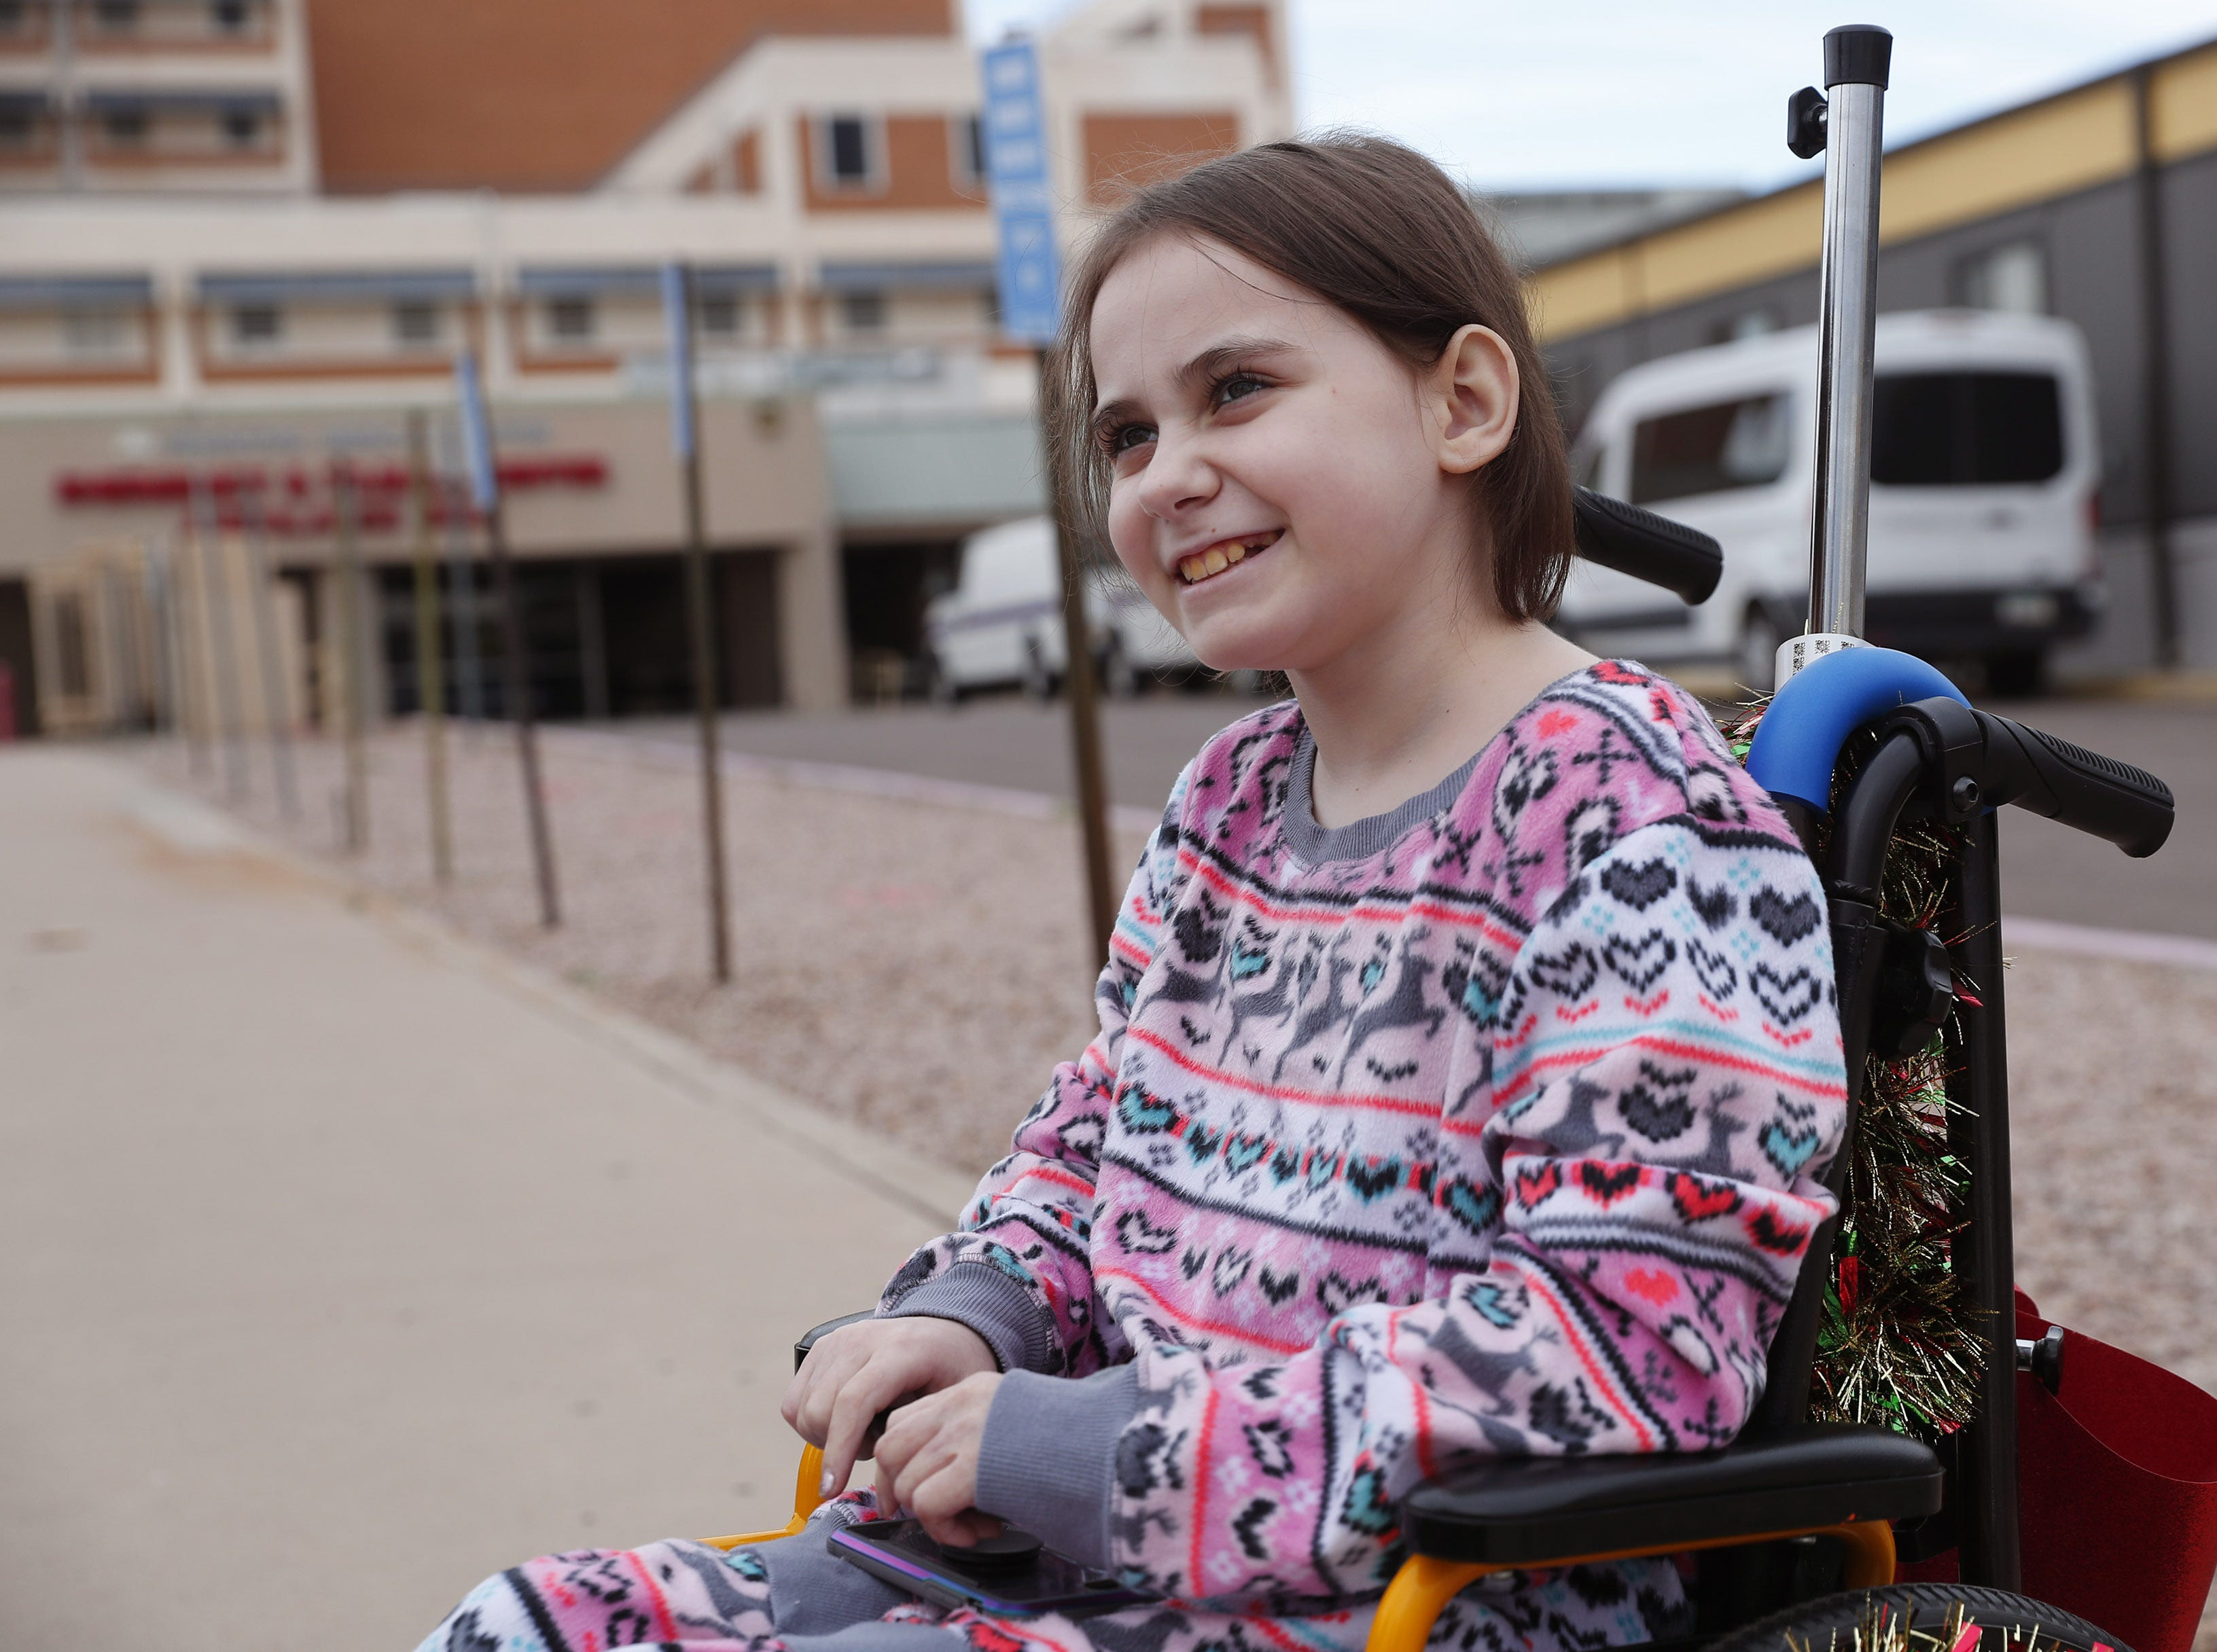 Isabella McCune sits in her wheelchair outside the Arizona Burn Center in Phoenix Dec. 12, 2018. The 9-year-old was severely burned in a home accident in March.